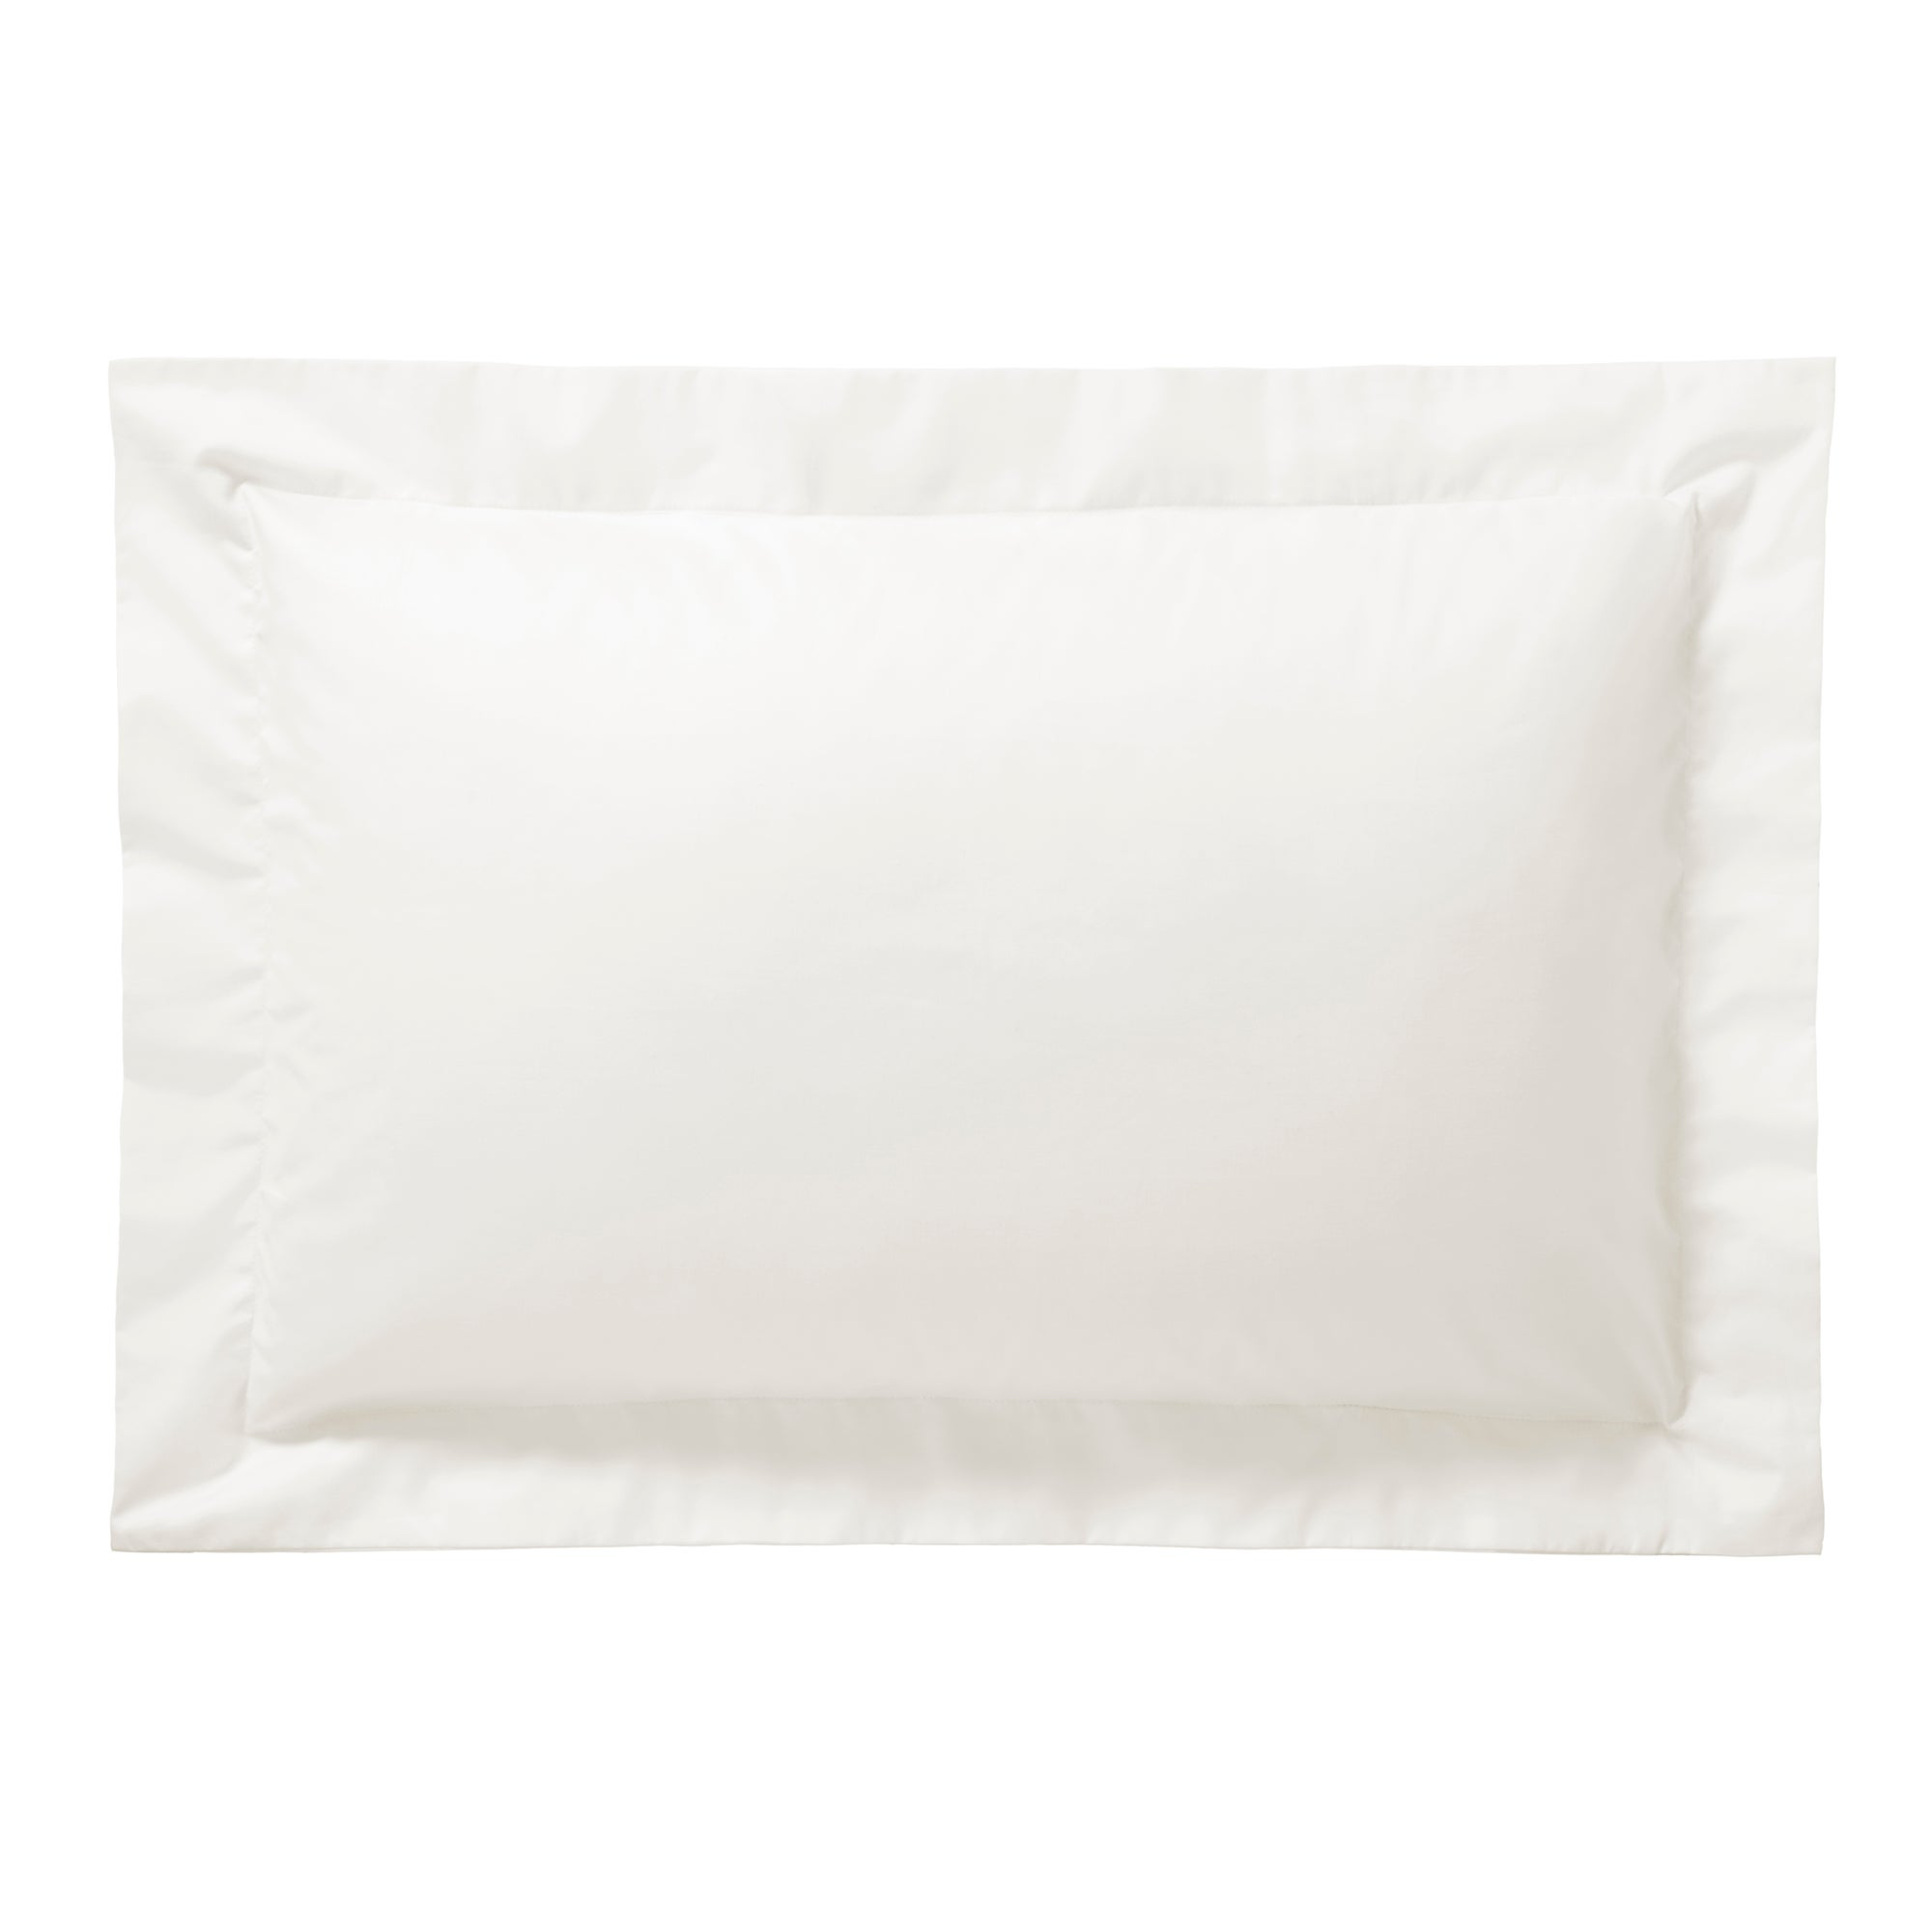 Cream Hotel Plain 300 Thread Count Collection Oxford Pillowcase